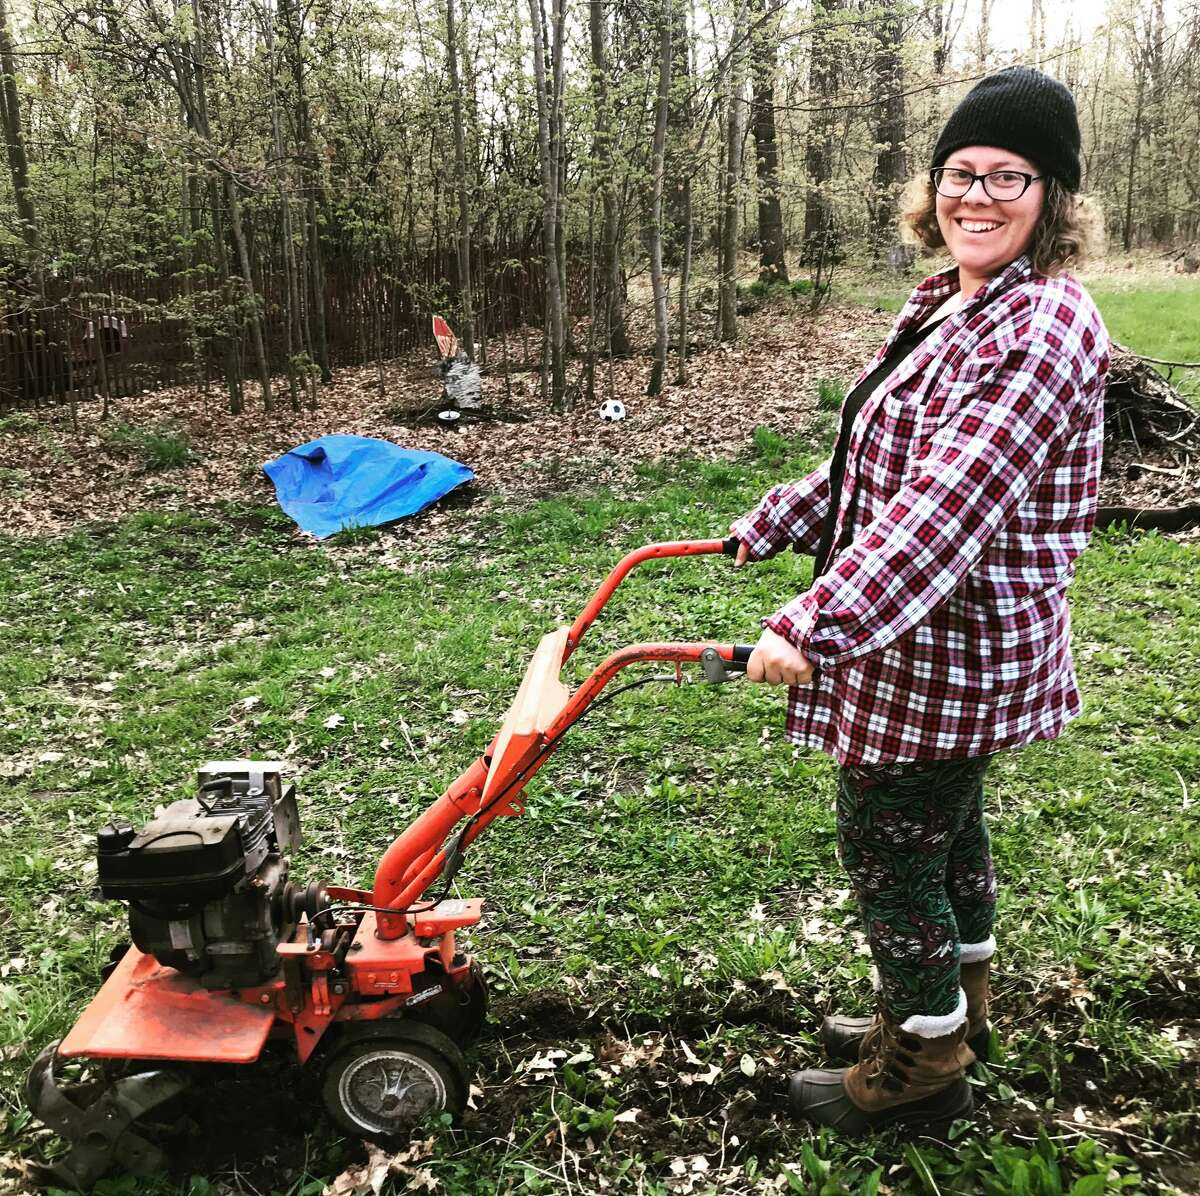 Small House Farms, a sustainable, holistic business on the outskirts of Sanford, was created in 2014 by a family that believes in simplicity. (Photo provided/Small House Farms)